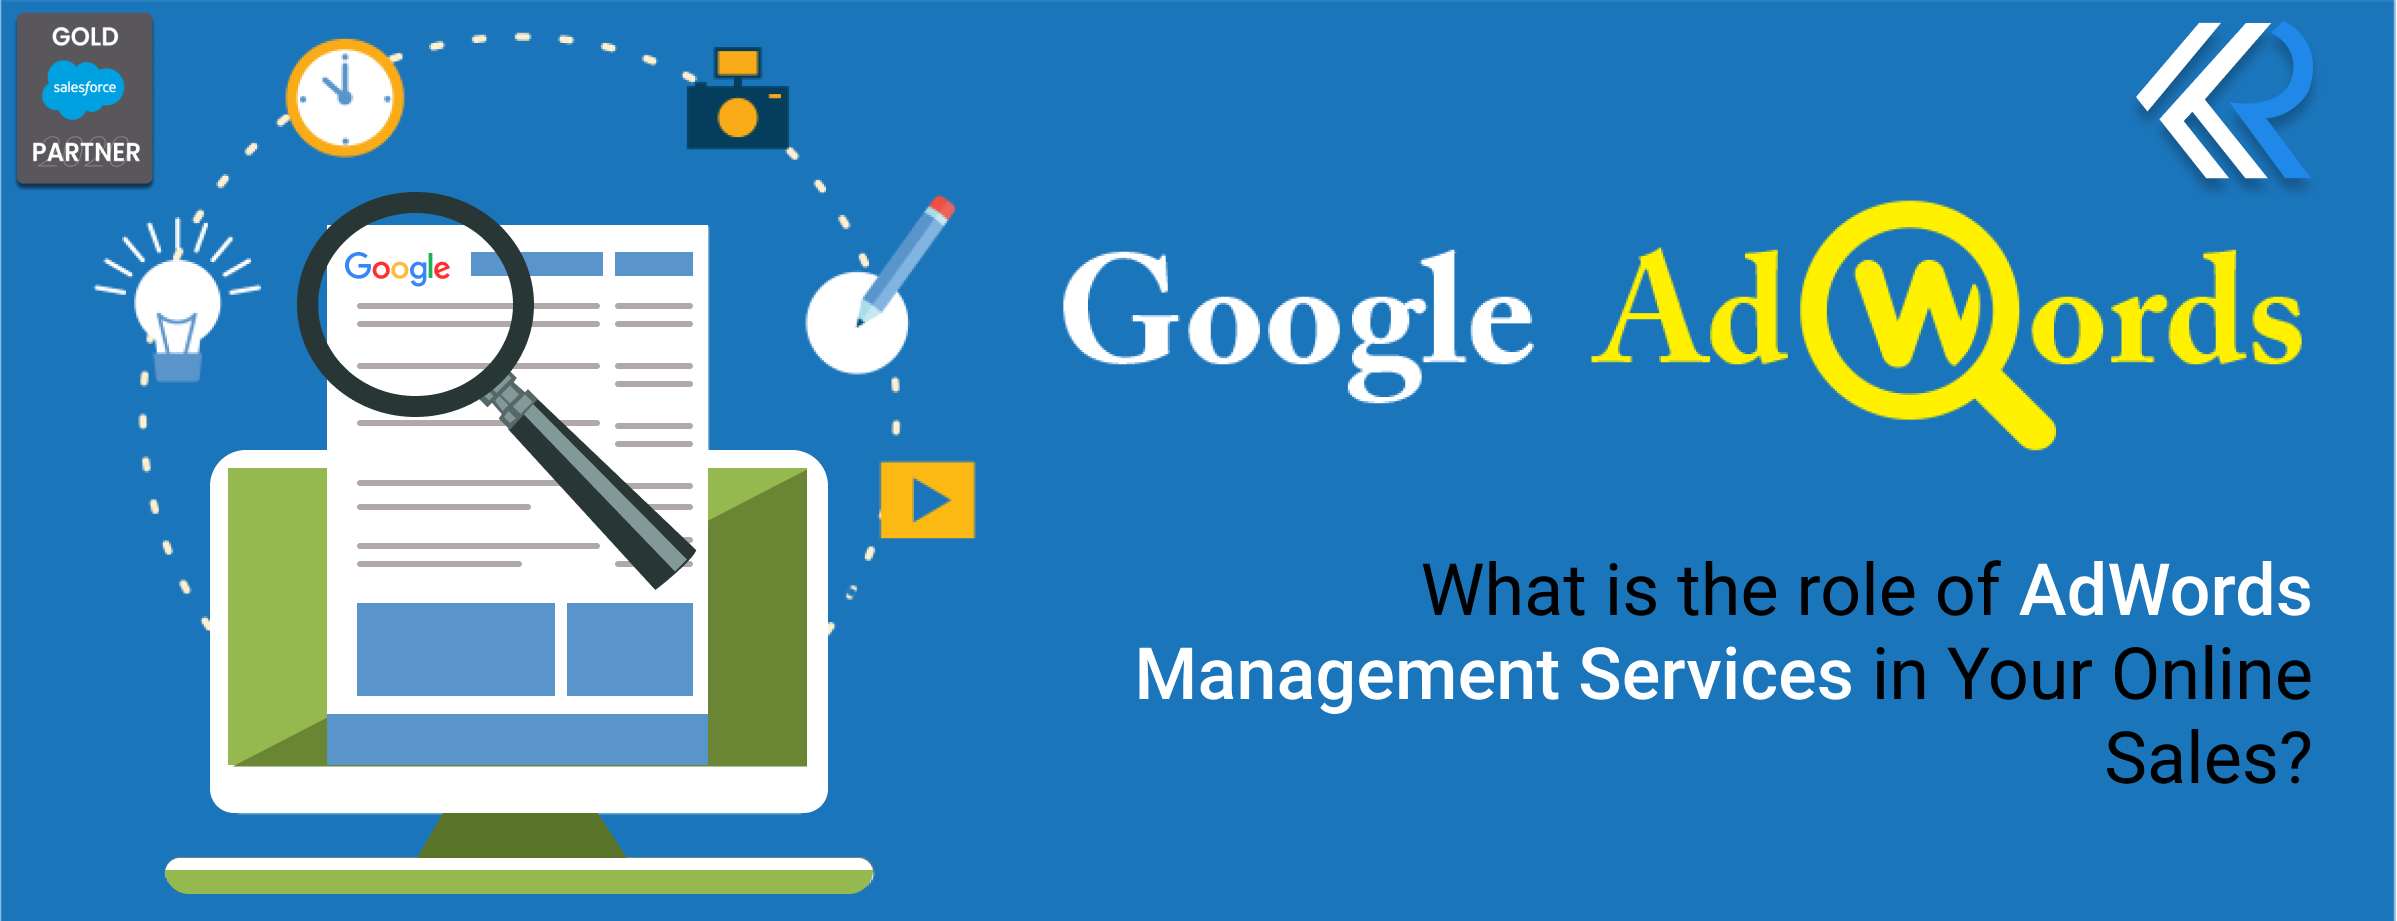 Role of Adwords management in your Sale -Kloudrac